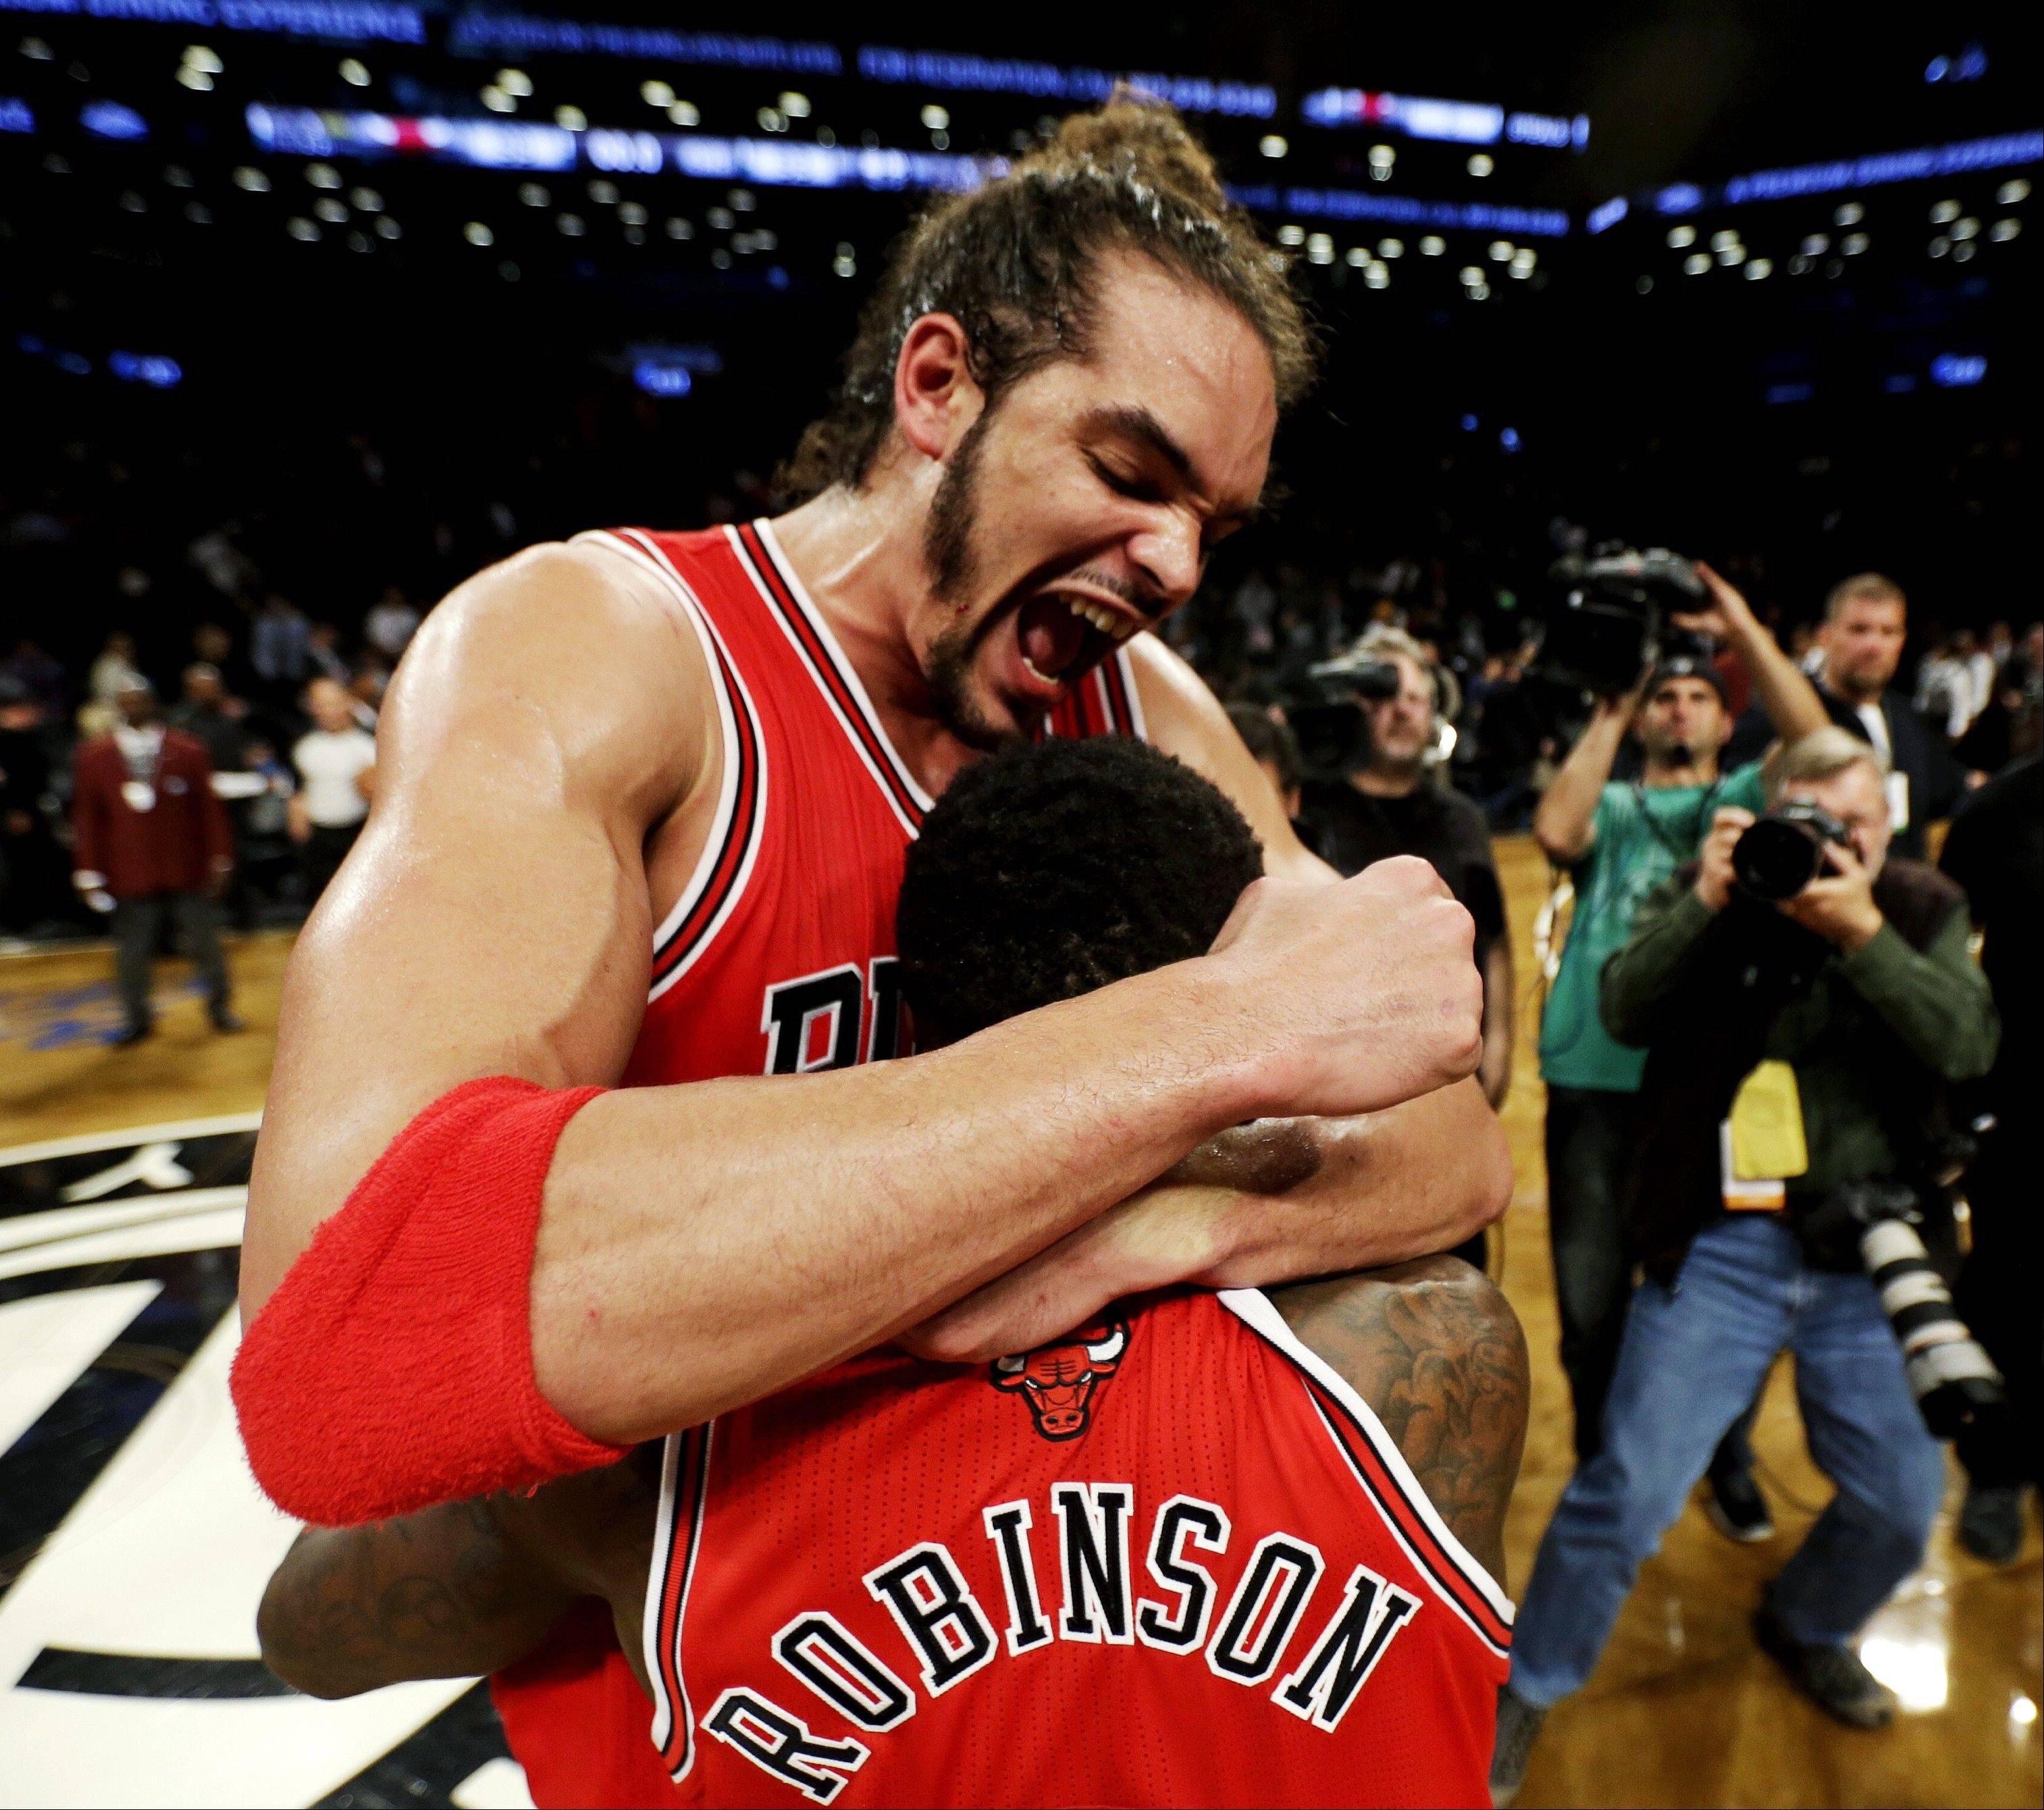 Chicago Bulls' Joakim Noah, top, celebrates with teammate Nate Robinson after defeating the Brooklyn Nets 99-93 in Game 7 of their first-round NBA basketball playoff series in New York, Saturday, May 4, 2013. The Bulls won the series to advance to a second-round series against the Miami Heat beginning Monday.